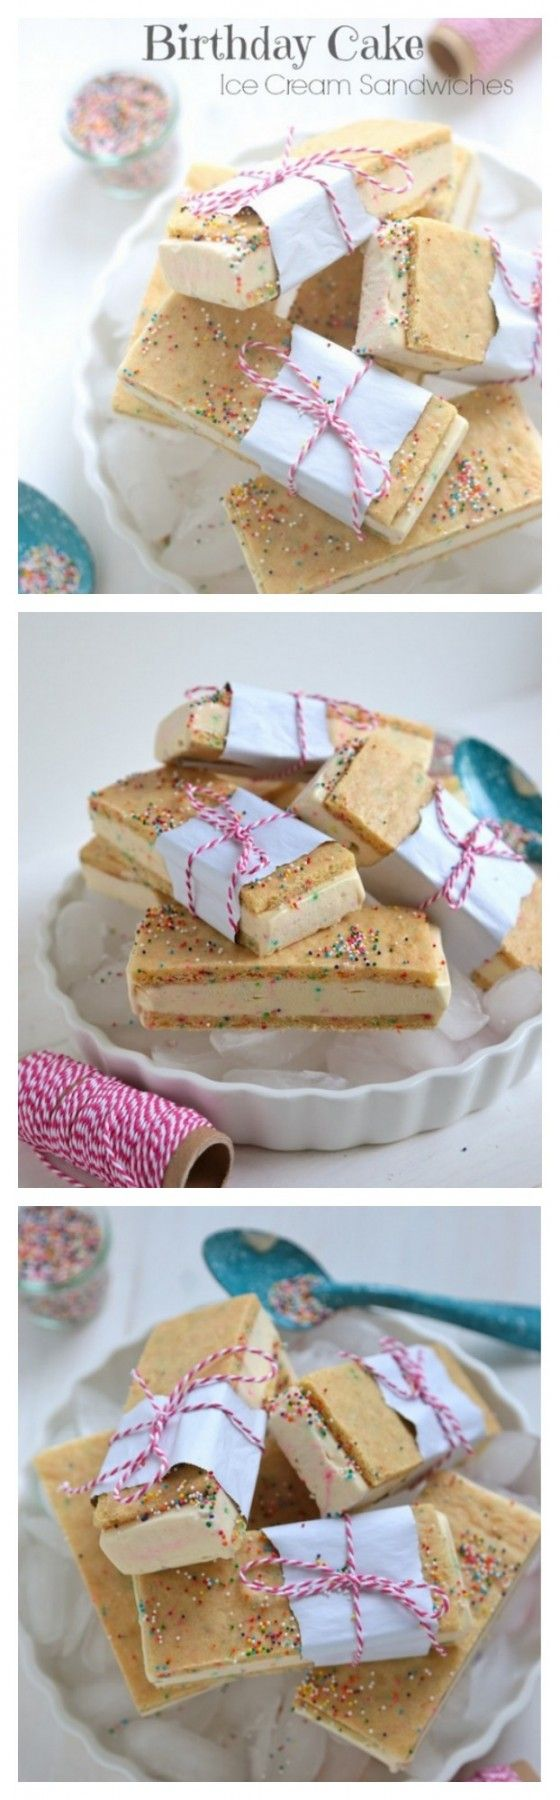 Homemade Birthday Cake Ice Cream Sandwiches with Sprinkles! - It's like a frozen birthday cake!